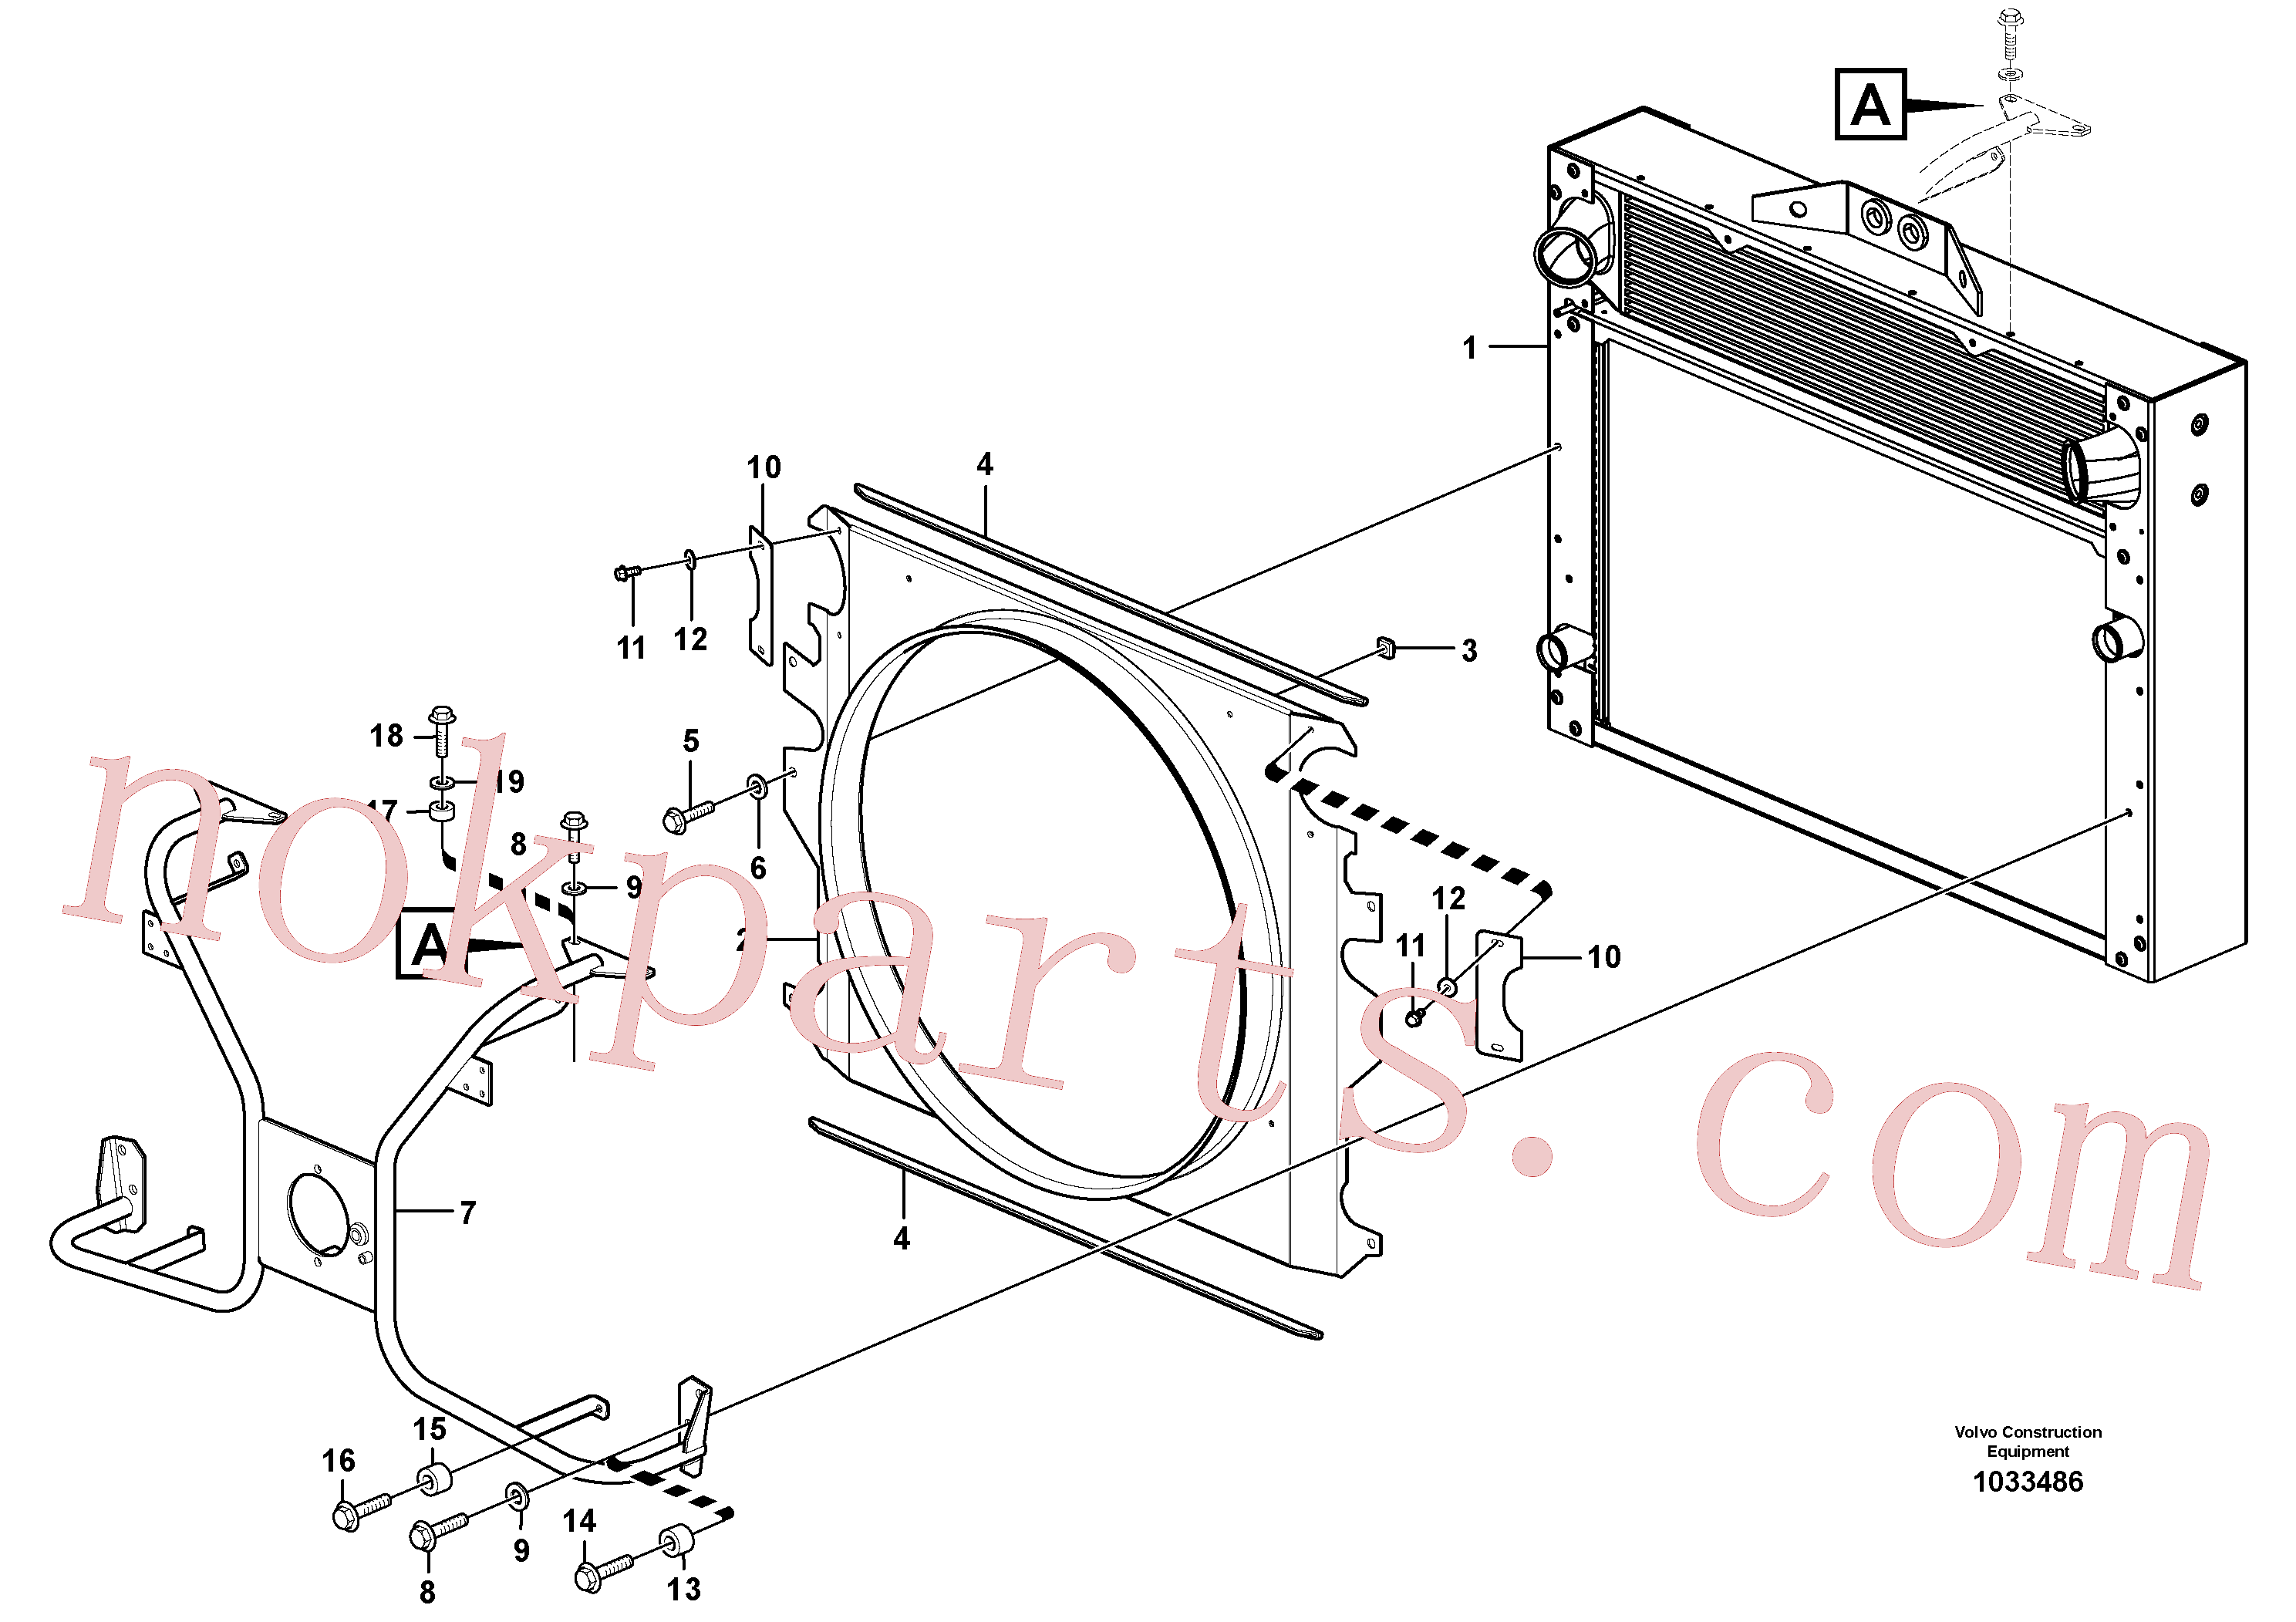 VOE976944 for Volvo Fan shroud with fitting parts(1033486 assembly)